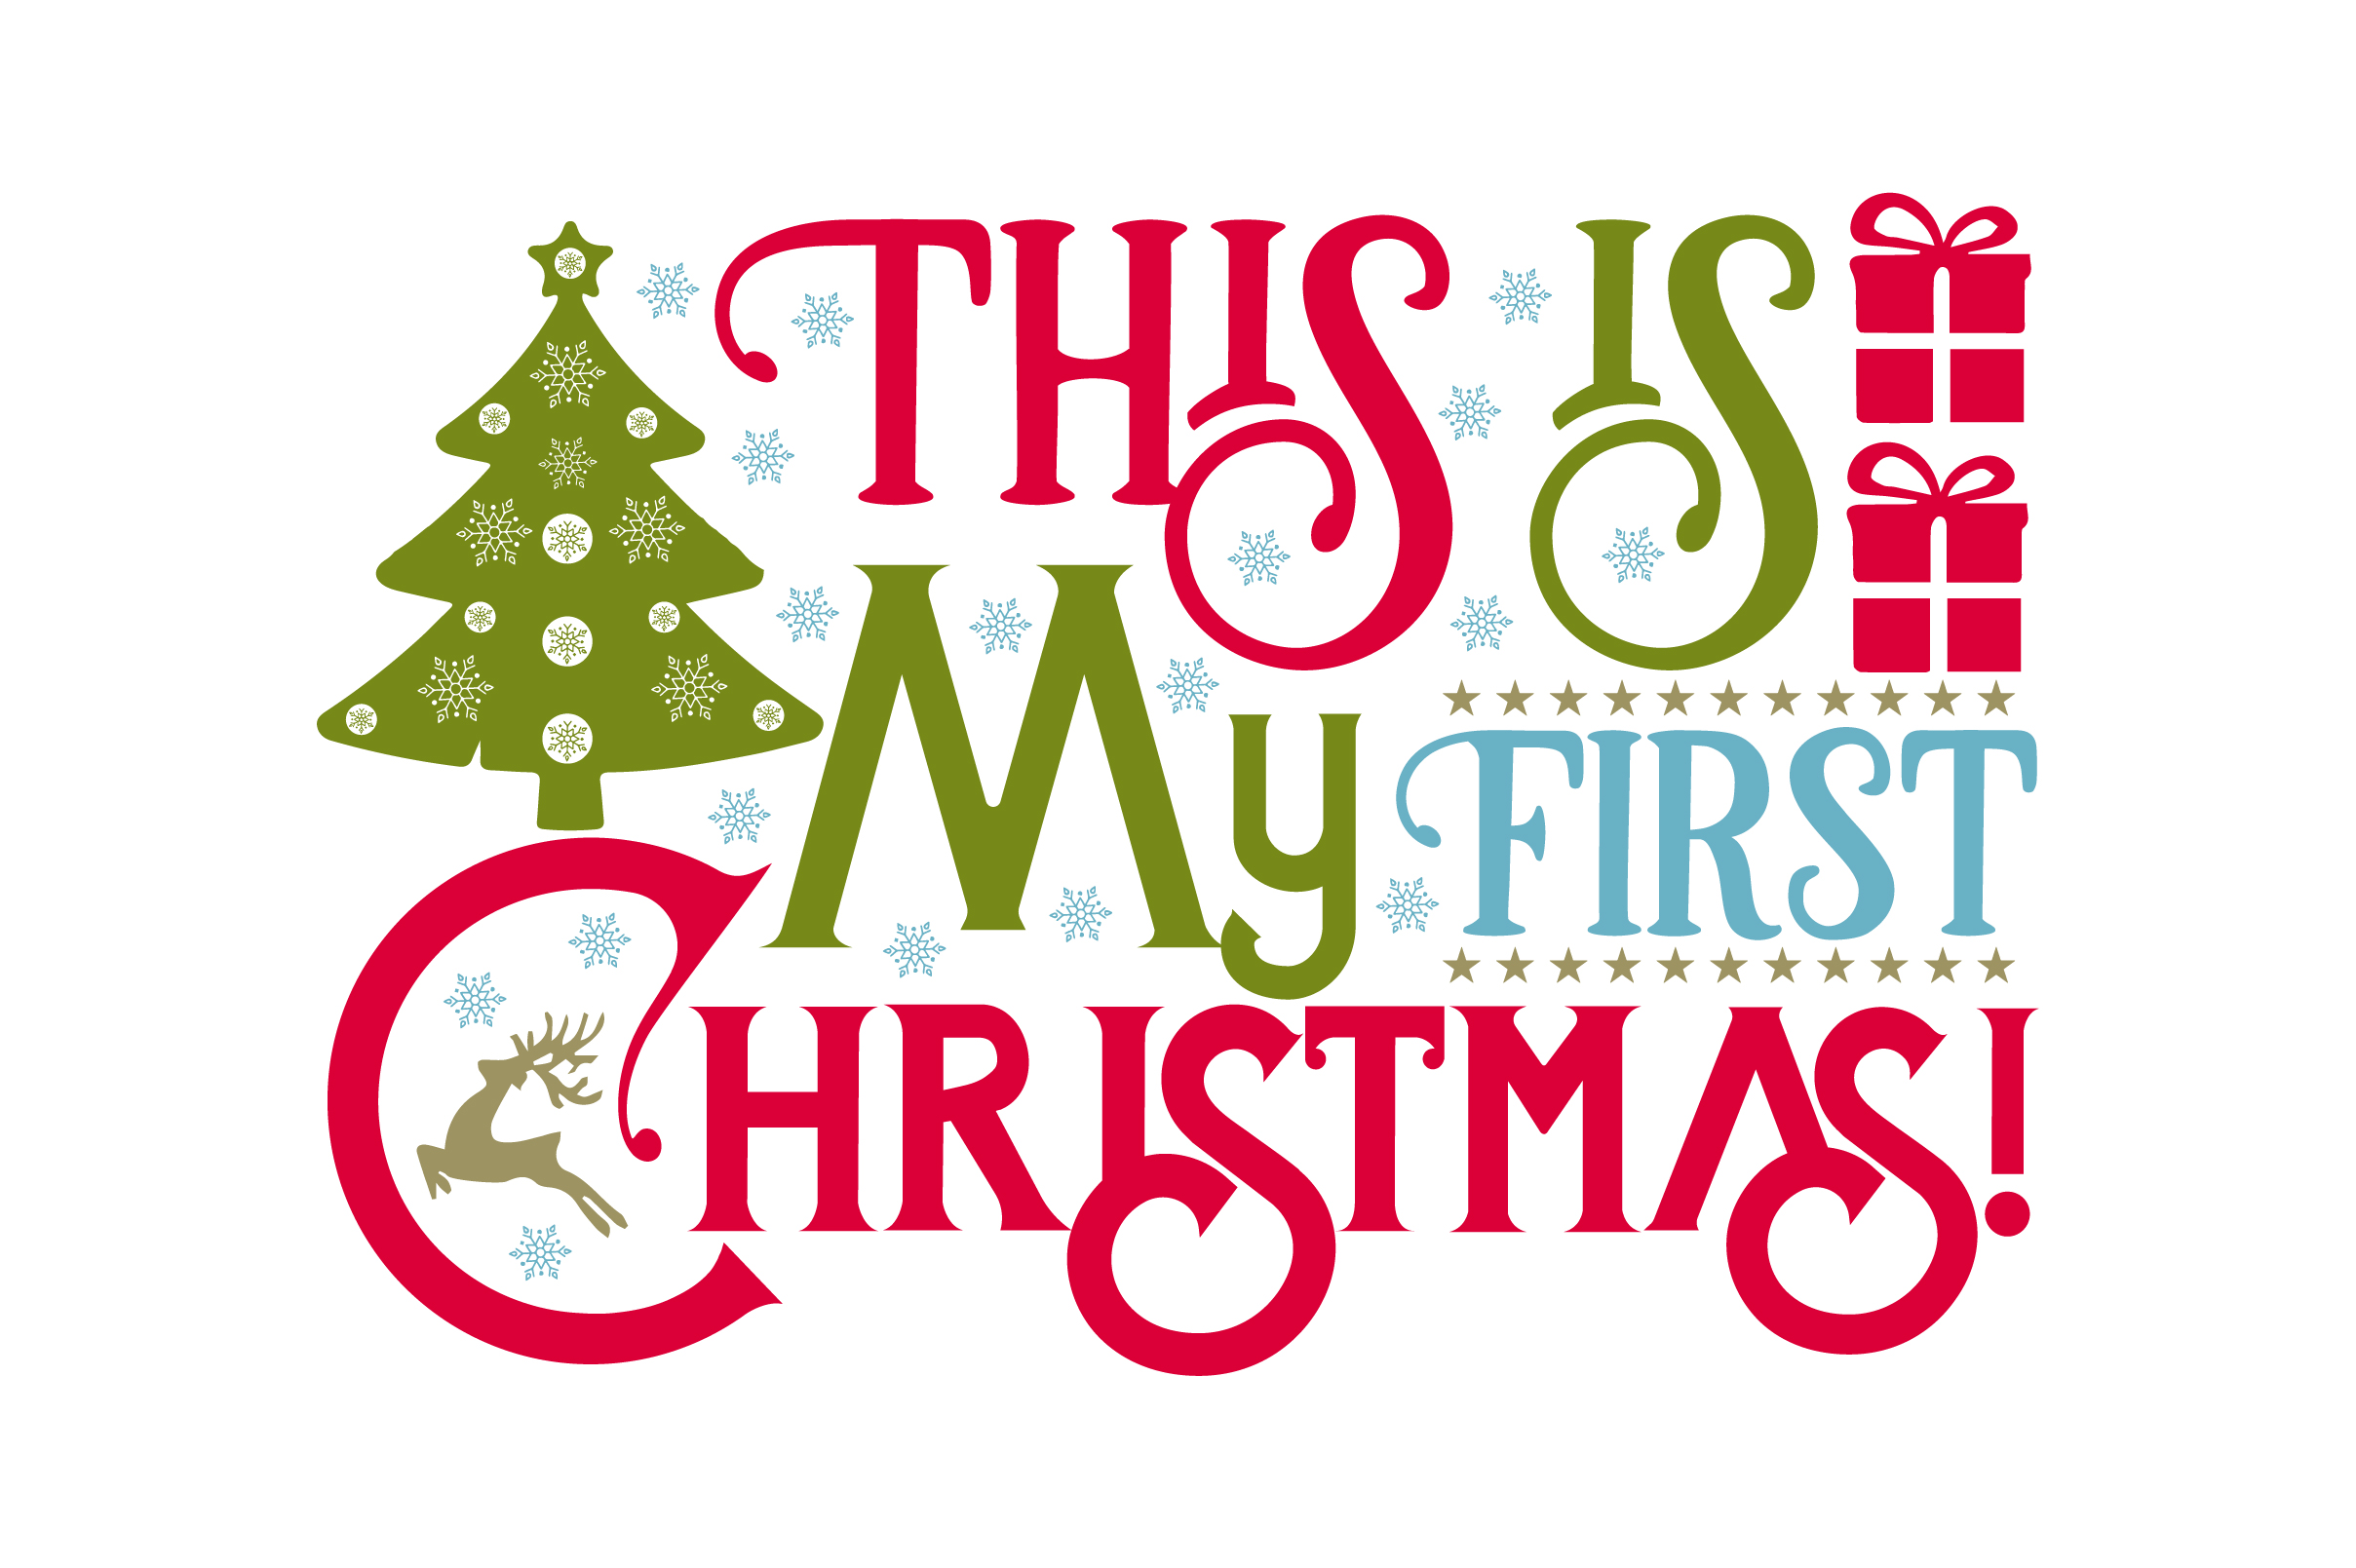 My First Christmas.This Is My First Christmas